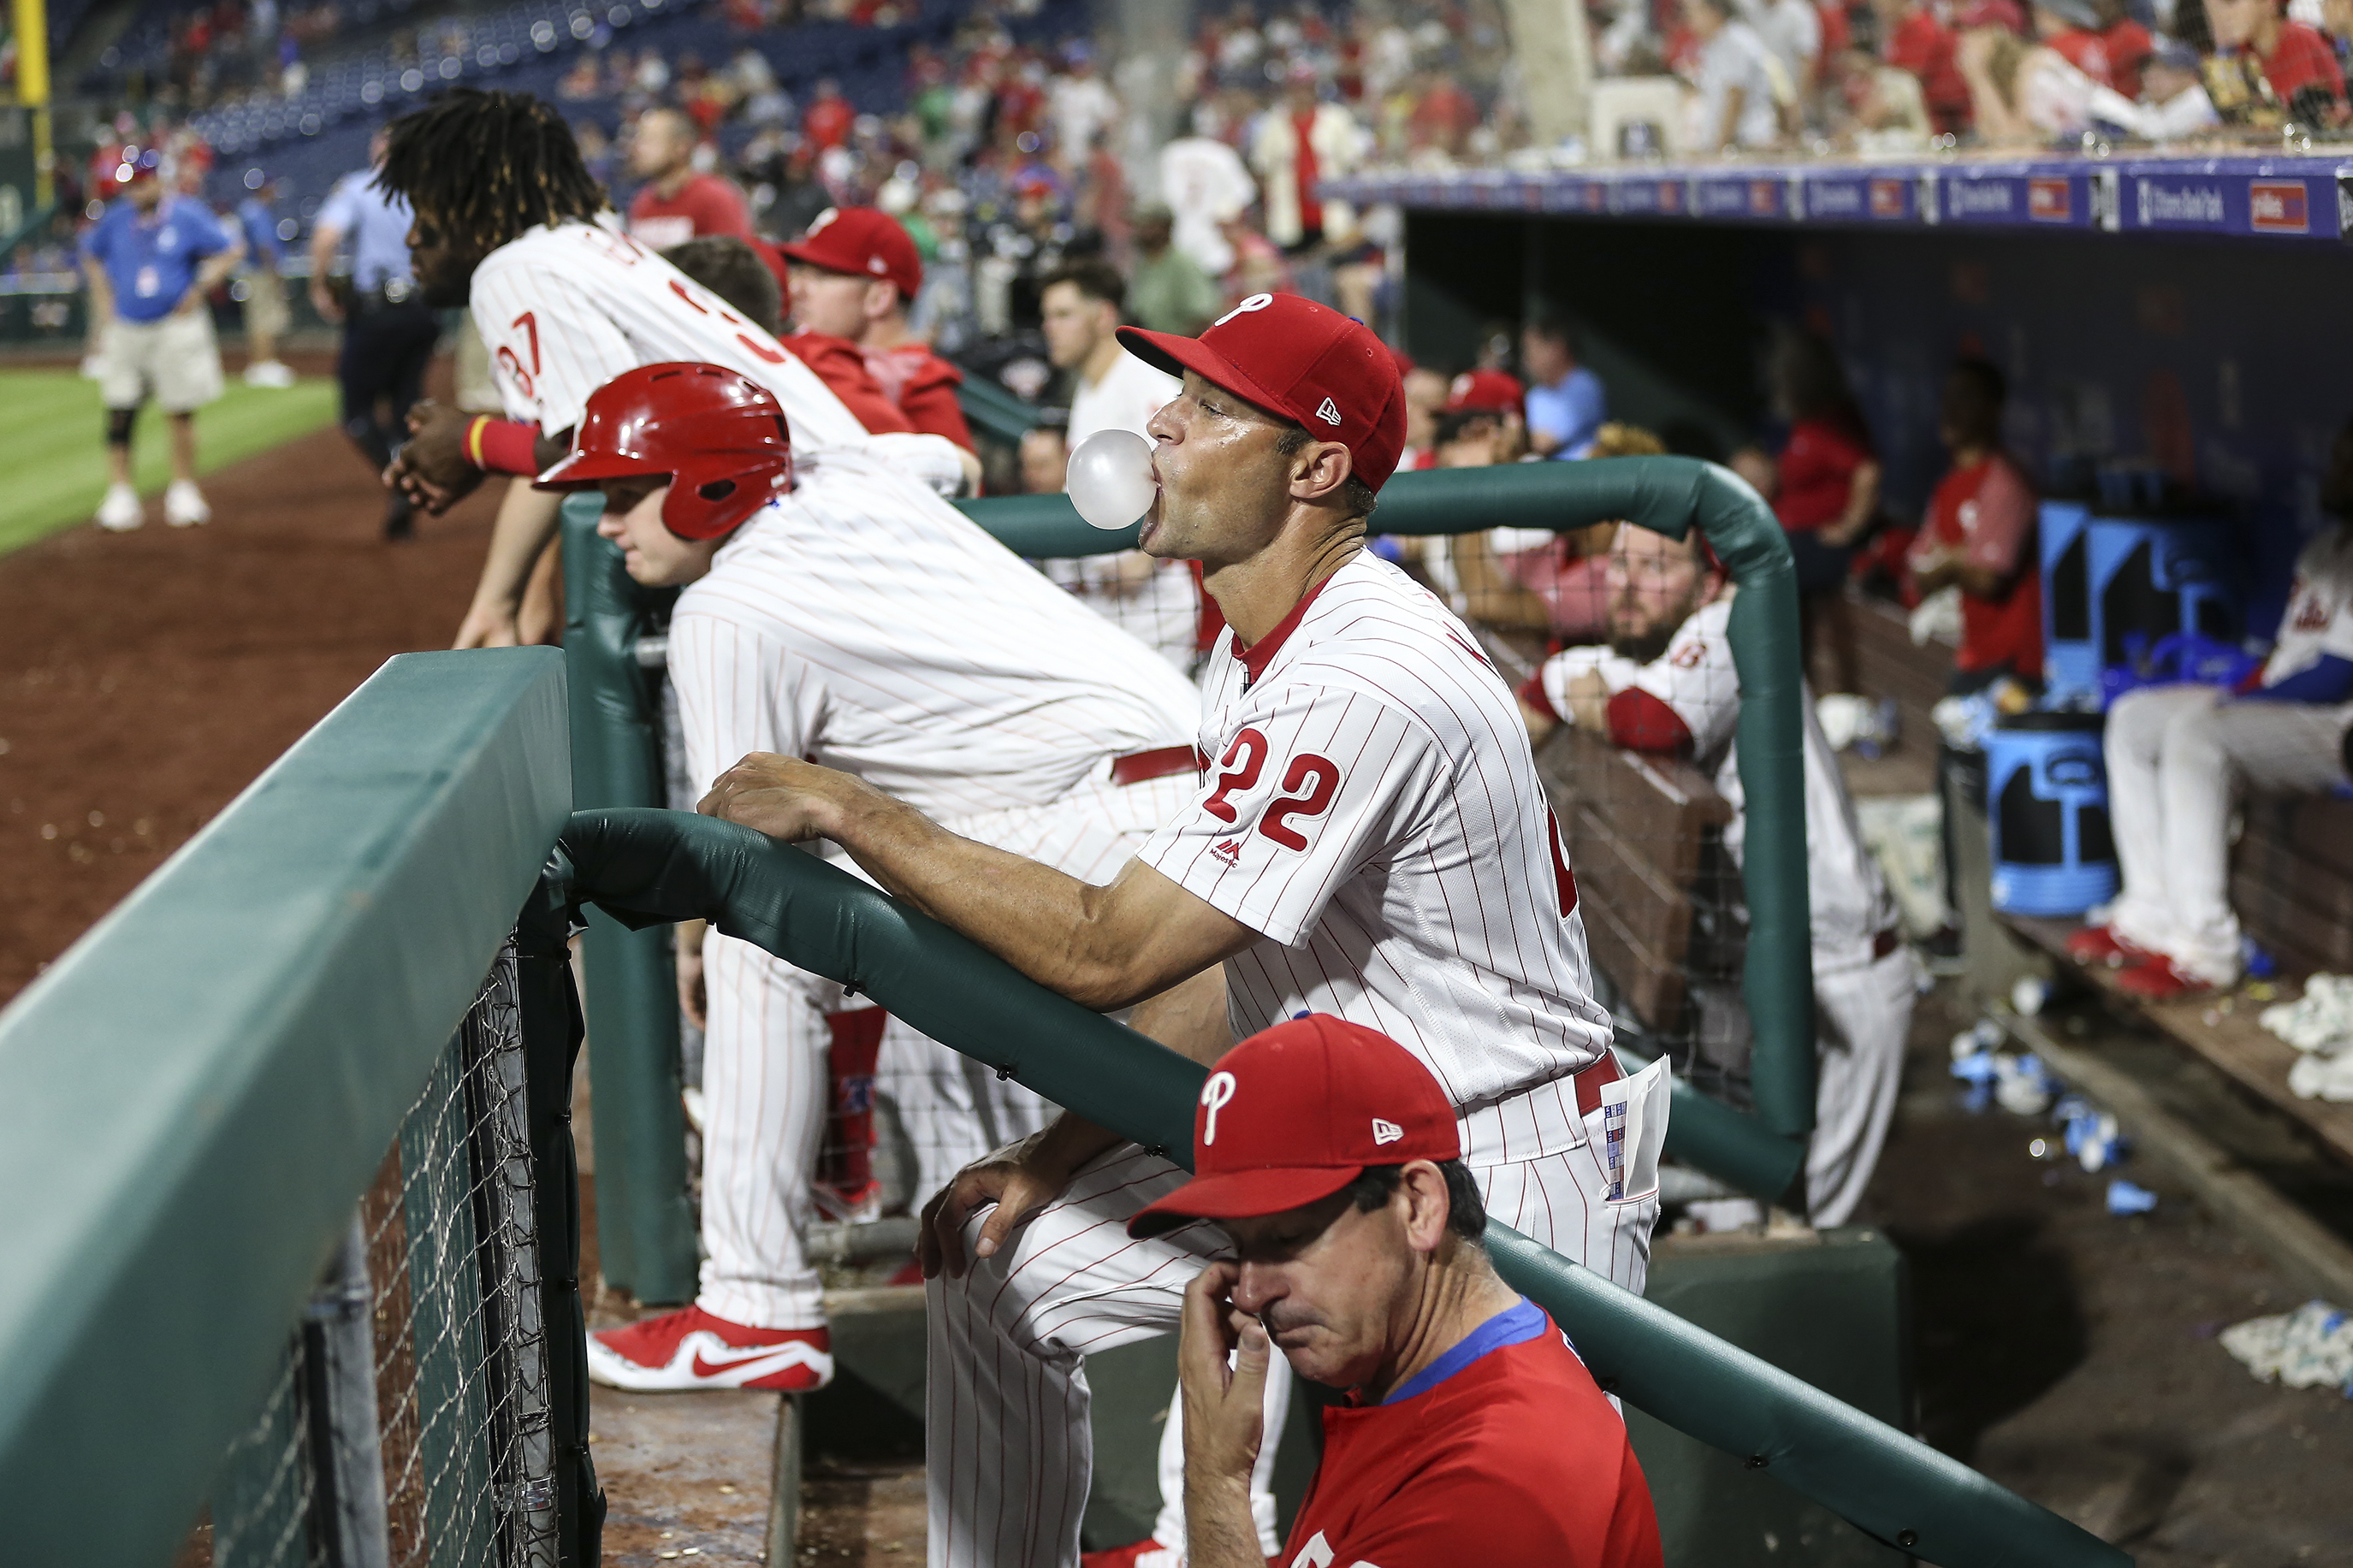 Phillies´ manger Gabe Kapler blows a bubble while waiting for the video review against the Nationals to counter the Vince Velasquez leaving second base to early for the last out of the game at Citizens Bank Park in Philadelphia, Tuesday, August 28, 2018. Nationals beat the Phillies 5-4.